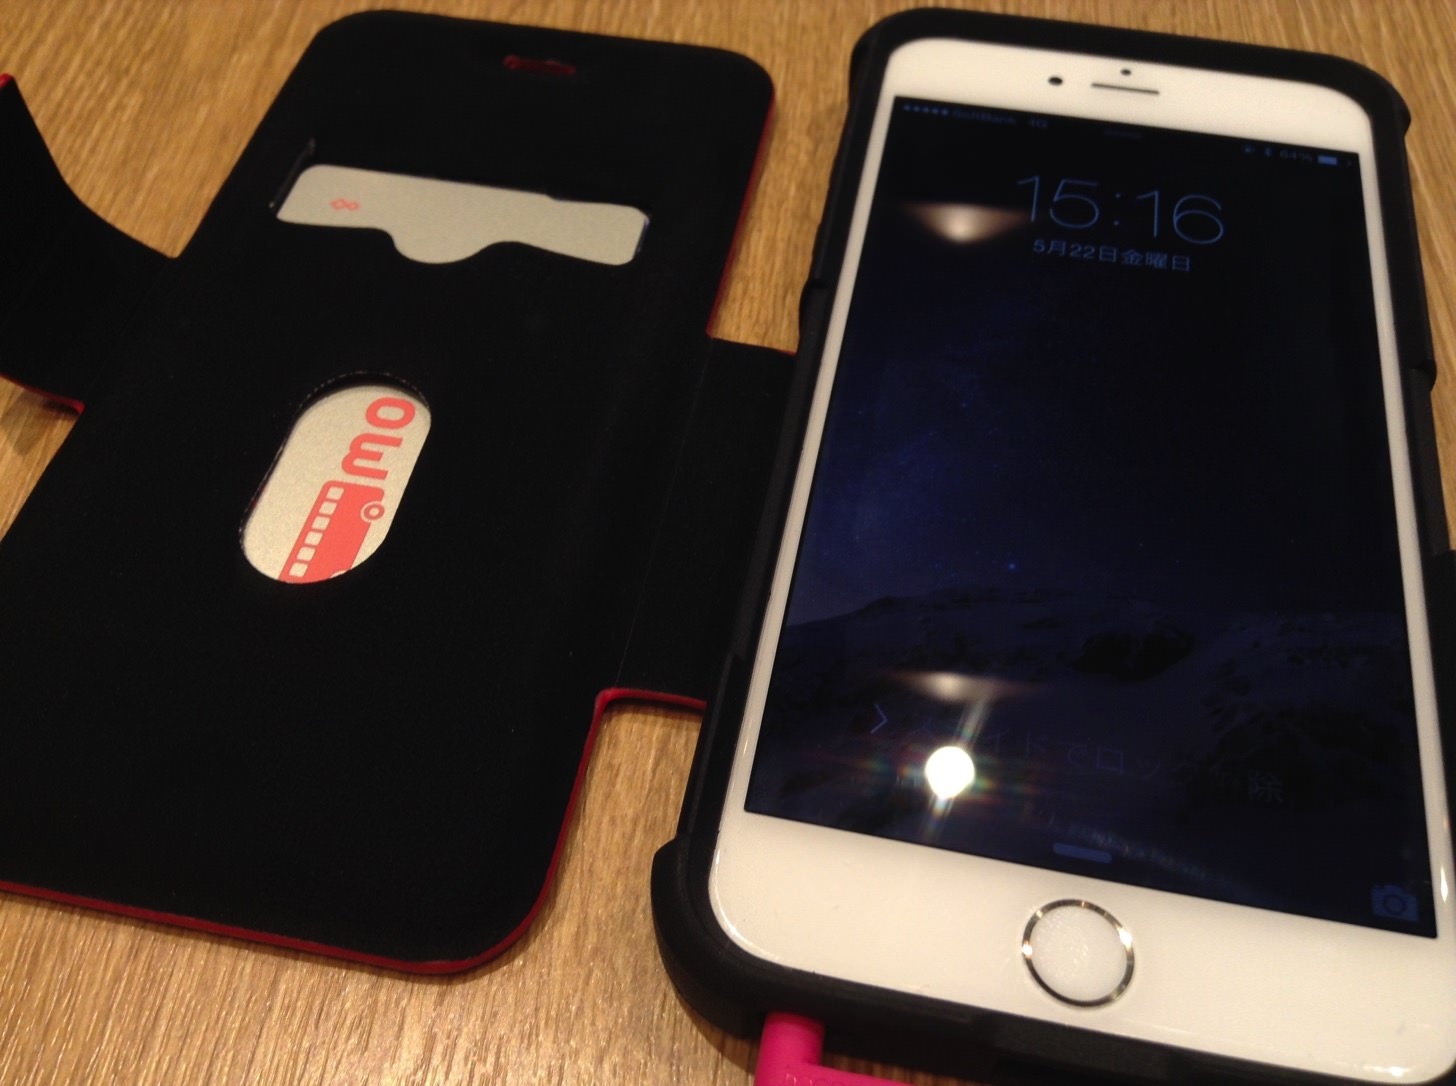 Ubg iphone case review4